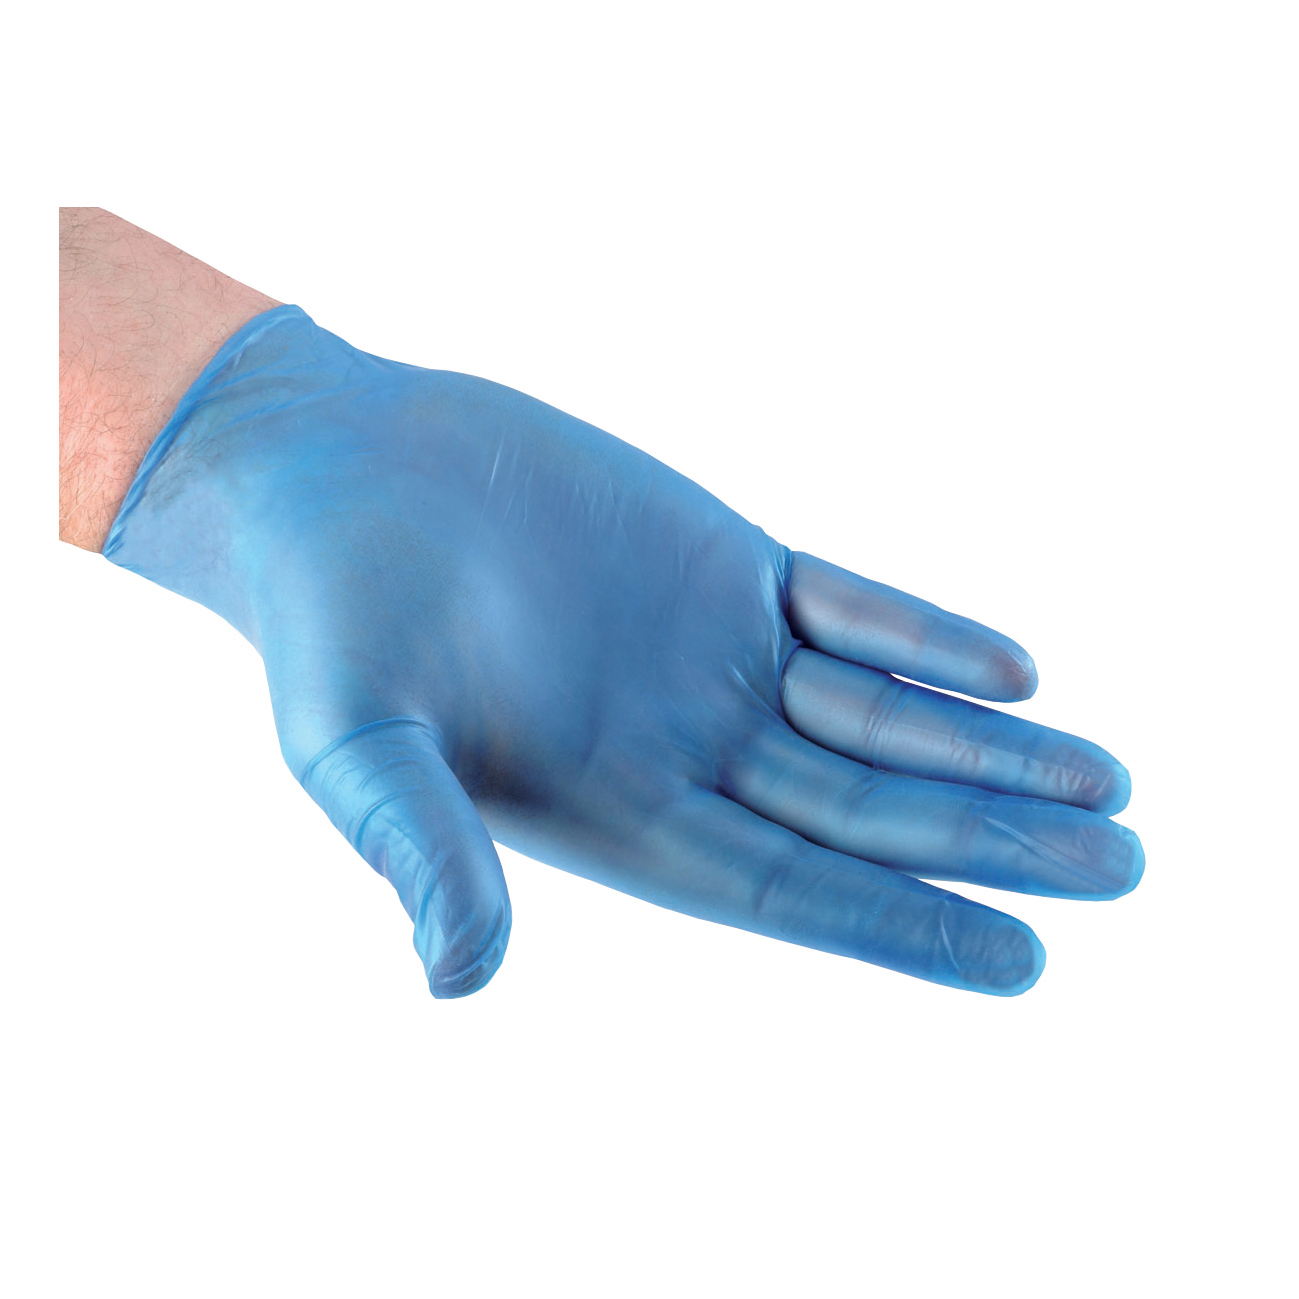 Image for Disposable Gloves Vinyl Powder Free Large Blue [Pack 100]